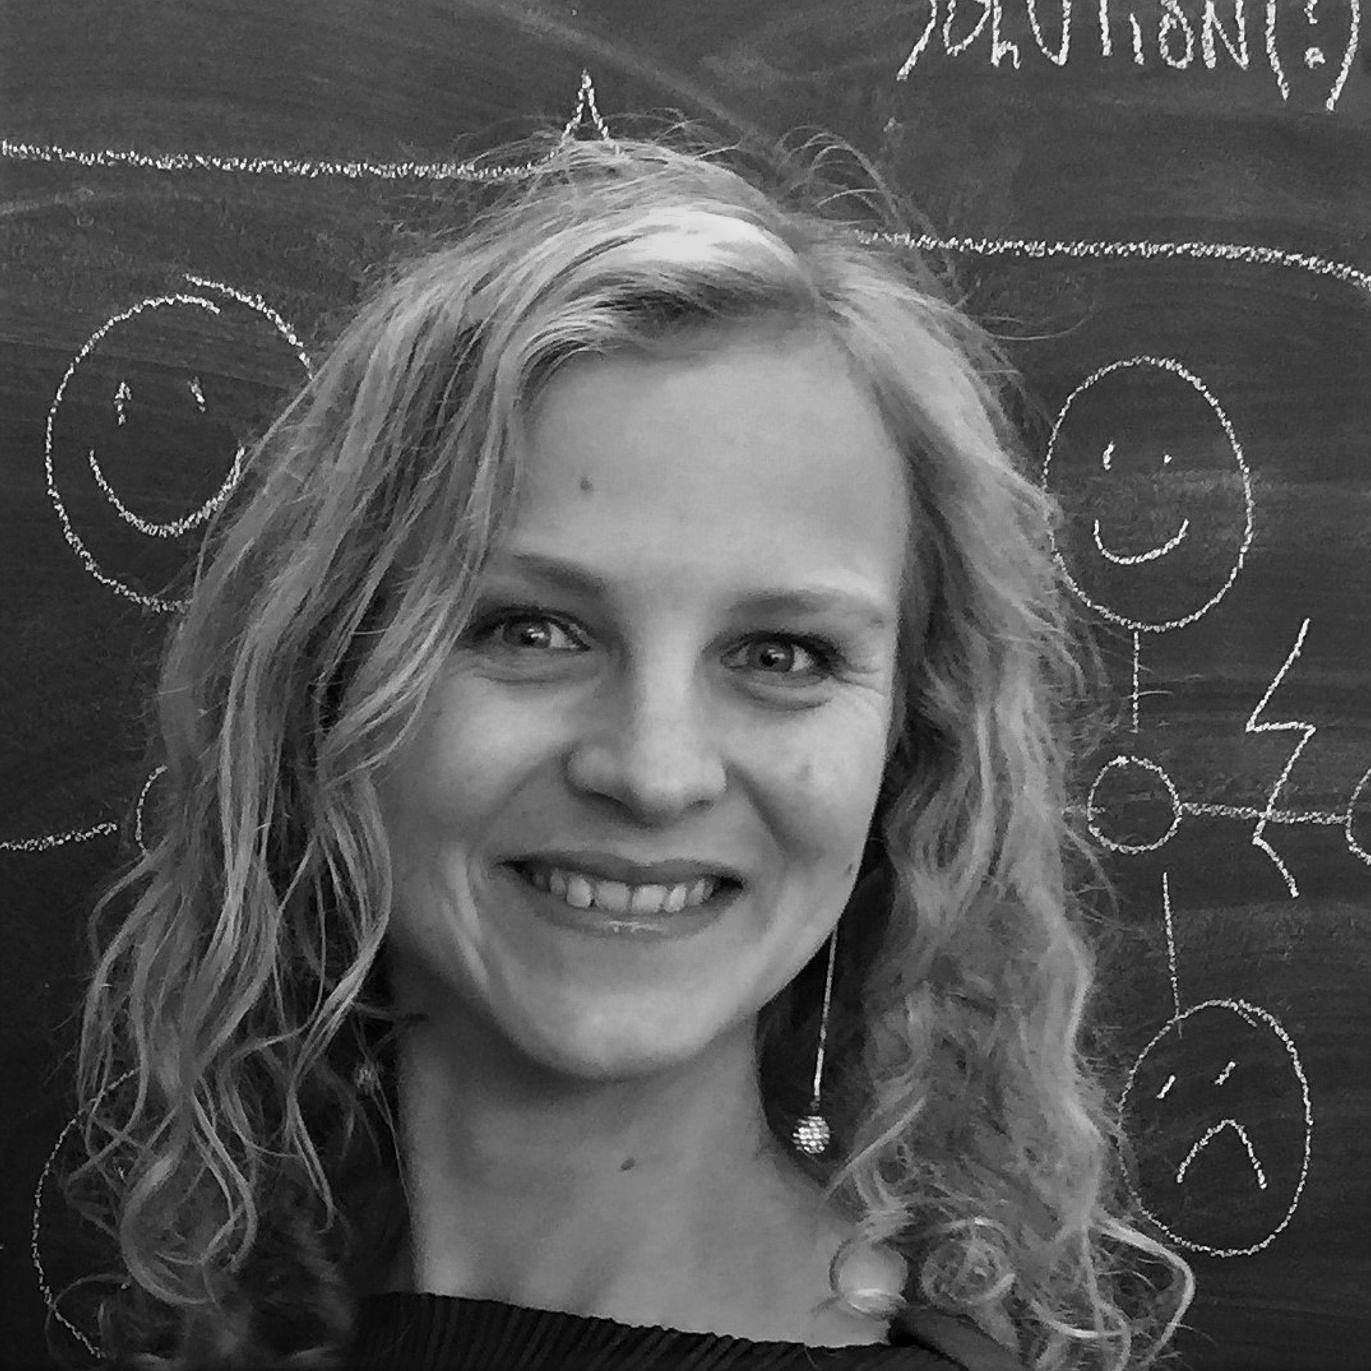 Hanne Wetland - Netlife | Business Designer and thought illustratorBusiness models, Design Thinking / Lean, User experience